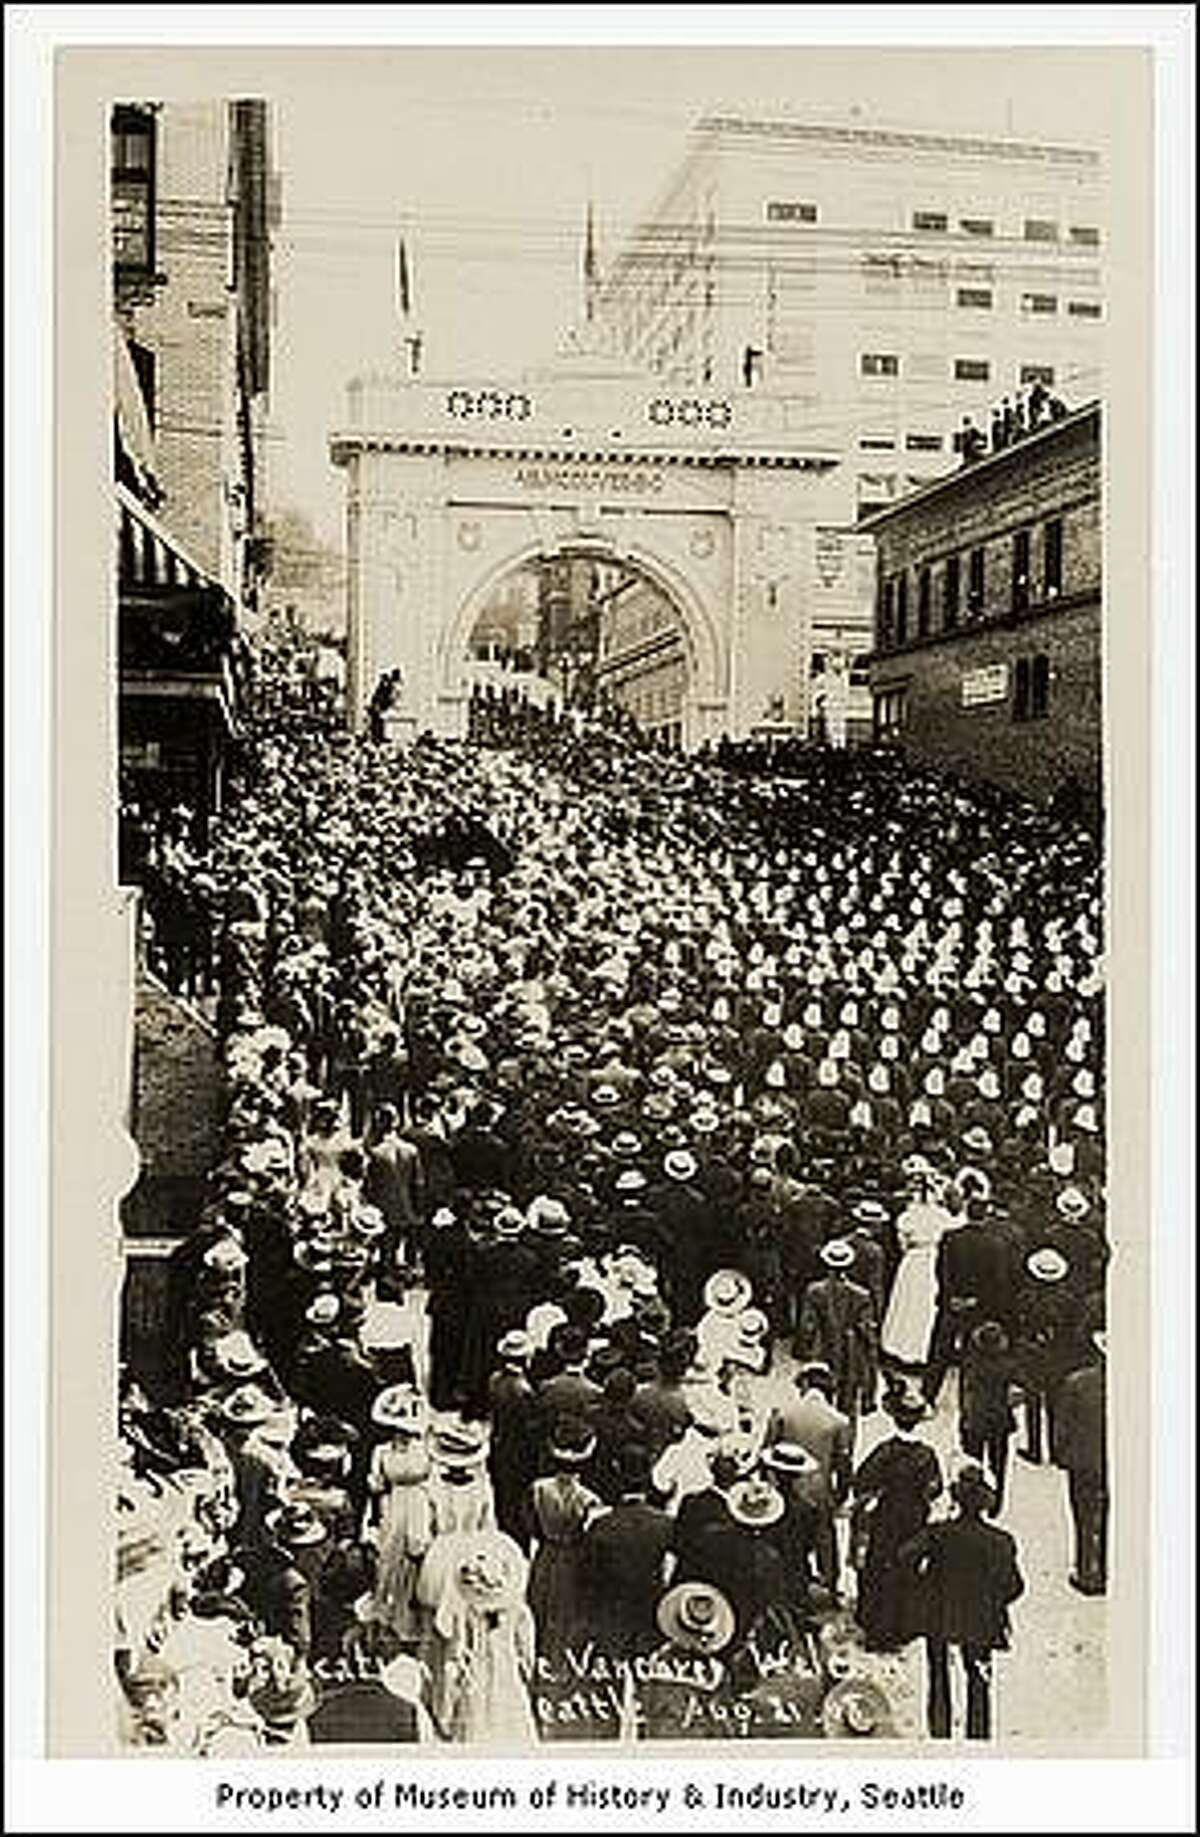 Dedication of the Vancouver Welcome Arch on Aug. 21, 1909, at the Alaska Yukon Pacific Exposition in Seattle. (Otto Daniel Goetze/MOHAI)